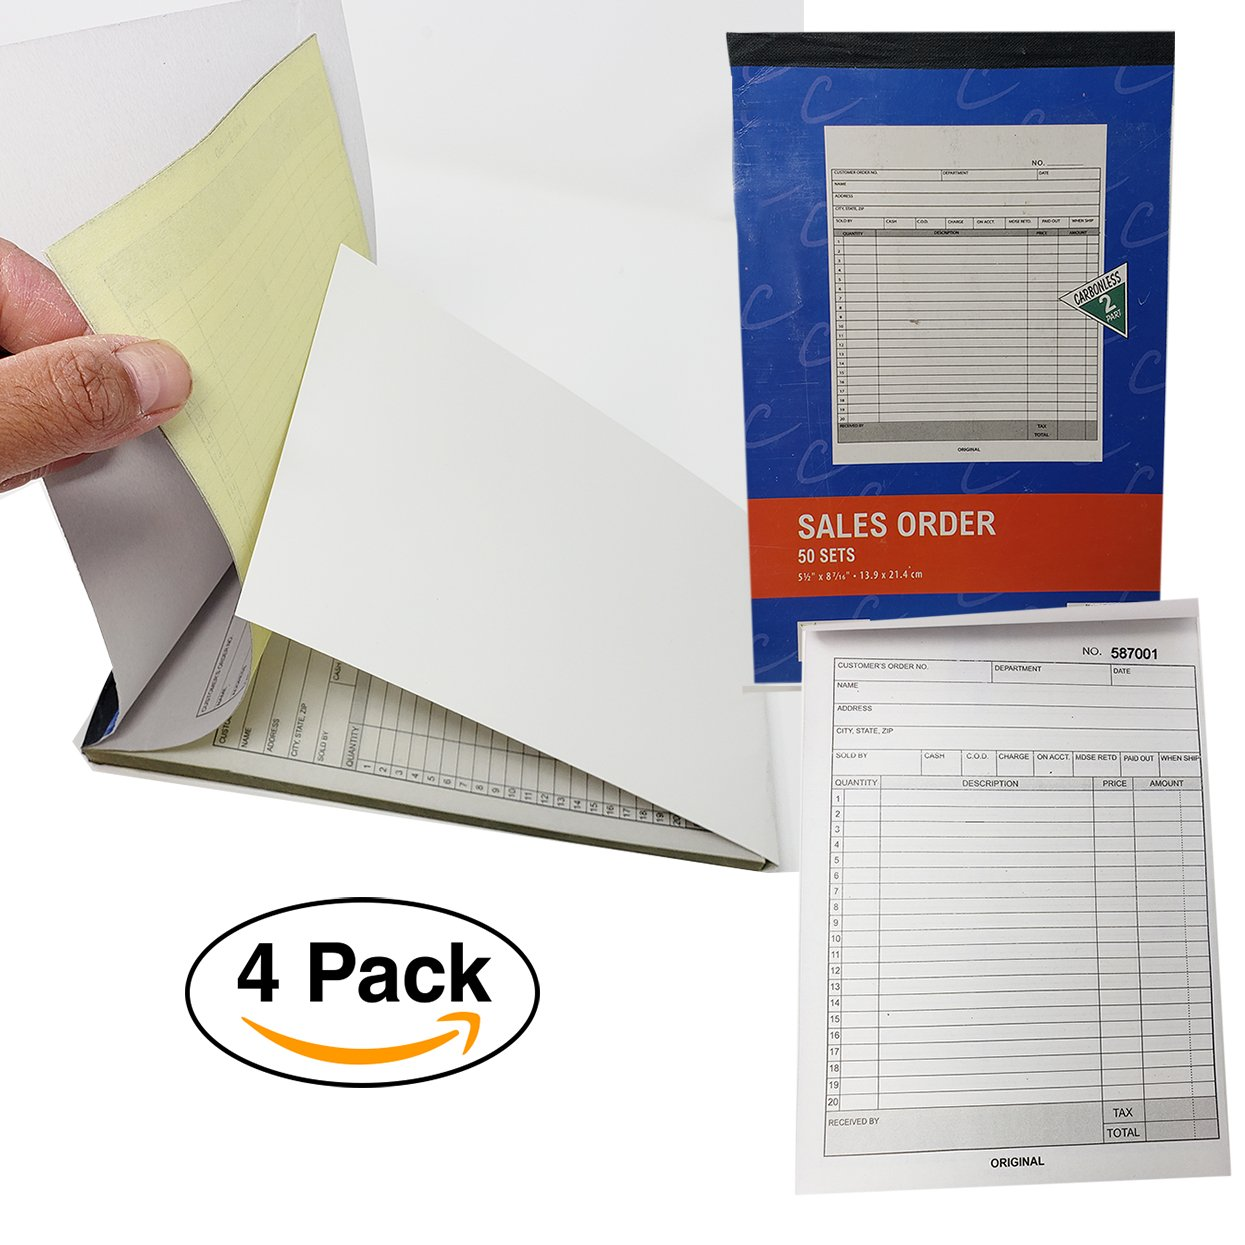 Sales Order Books Invoices | Receipts, WRAPPED AROUND COVER - 2 Part, Carbonless, White/Canary, 8.5 x 5.5 Inches, 50 Sets per Book, 4 Bo